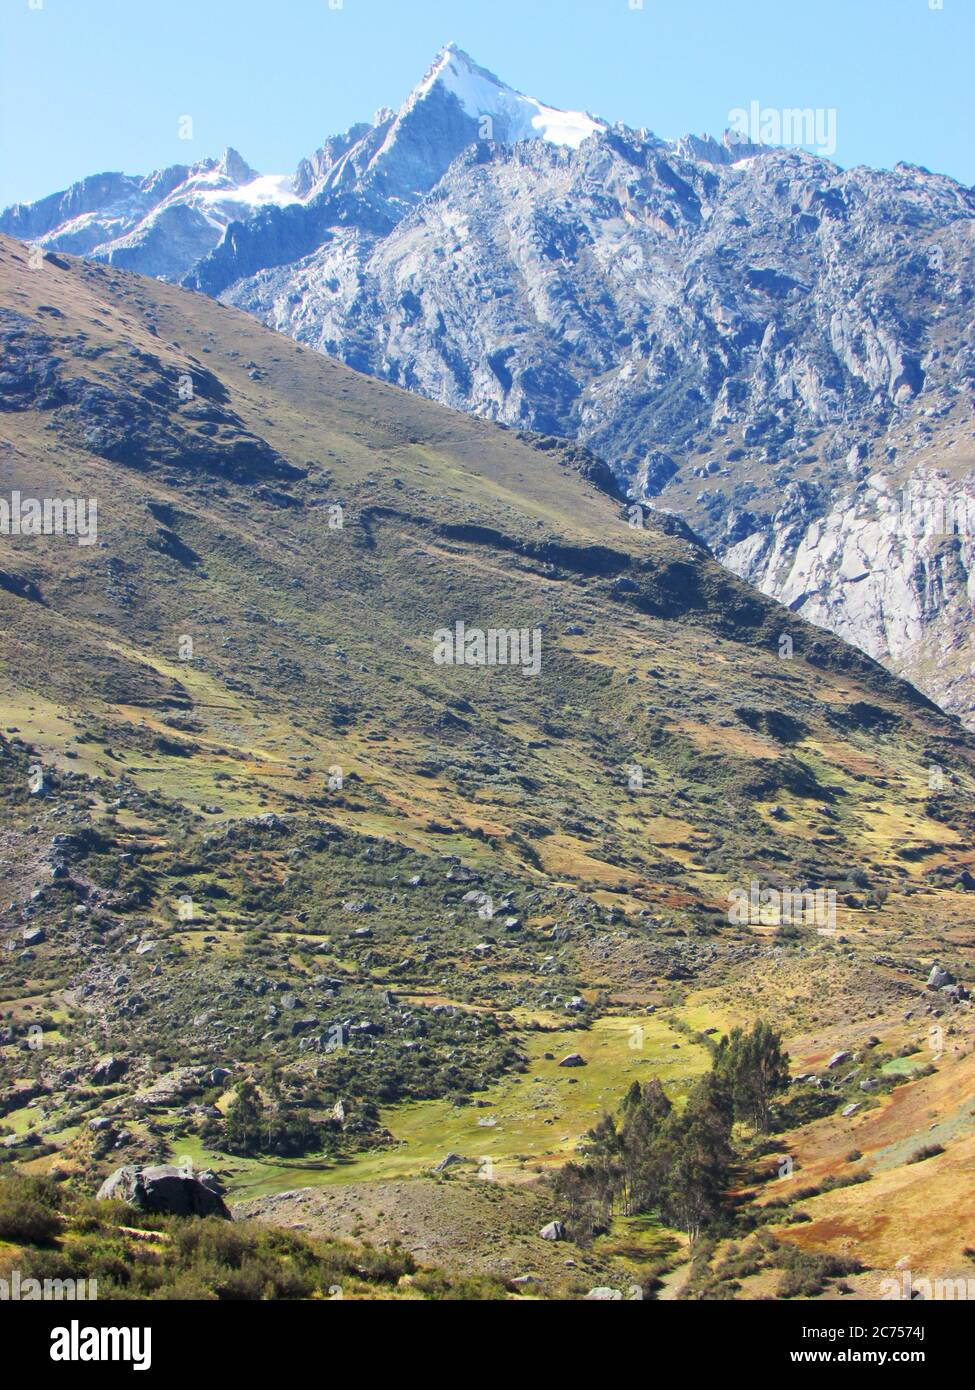 Secluded valleys within the foothills of Huascaran range or Cordillera Blanca, Peru Stock Photo